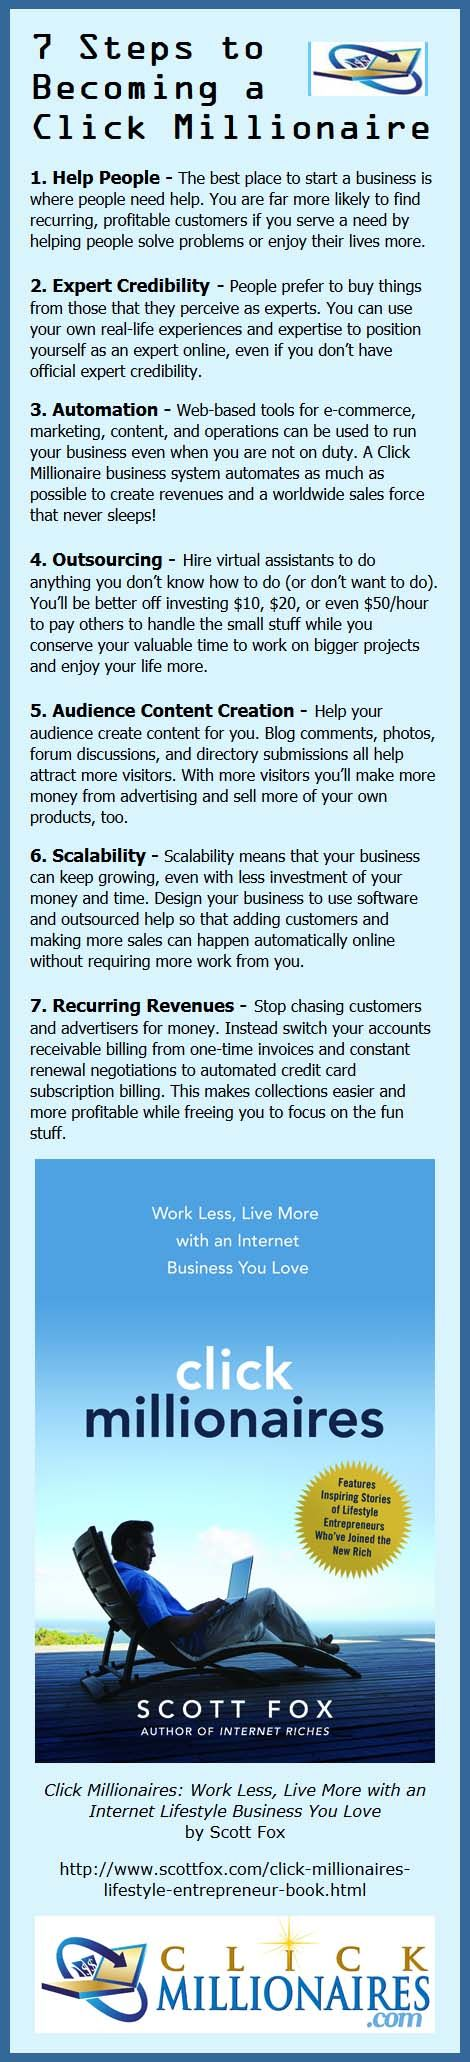 Seven key elements to a successful Internet marketing and sales strategy for any individual or business. Learn how to become a Click Millionaire!